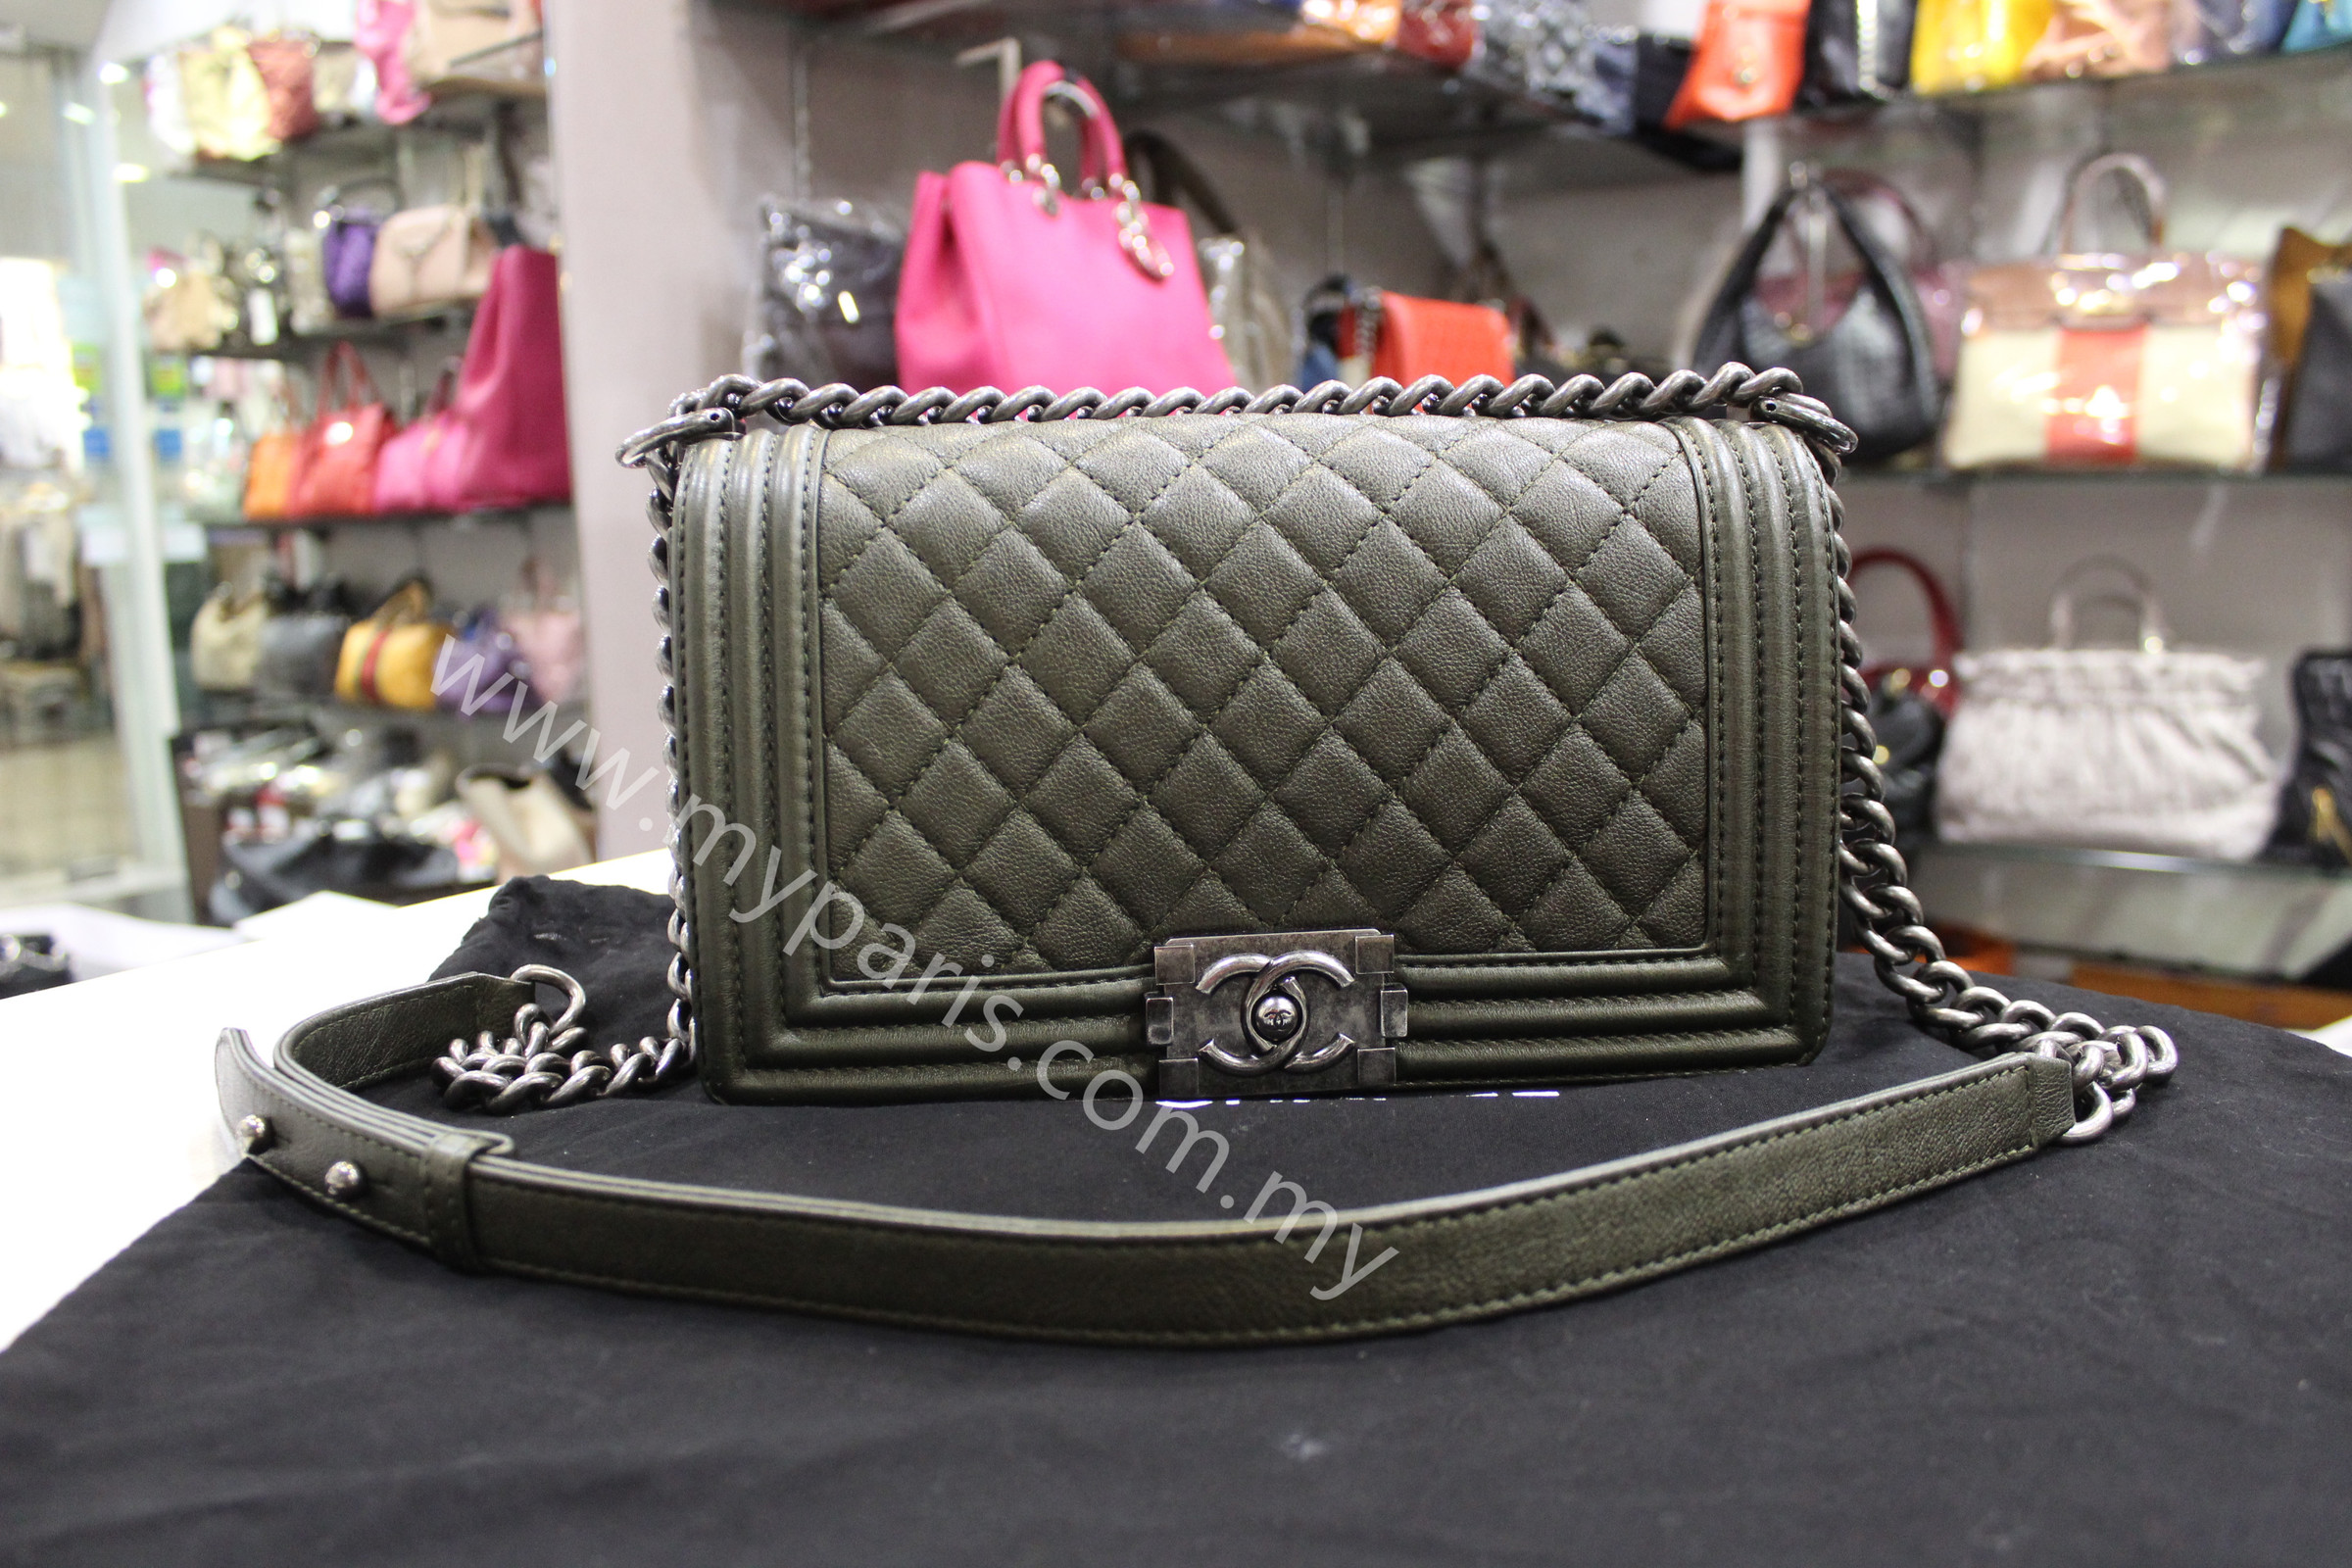 2da5a8422a64 Home › Chanel Olive Green Caviar Leboy Old Medium Ruthenium Hardware.  IMG_7275.JPG